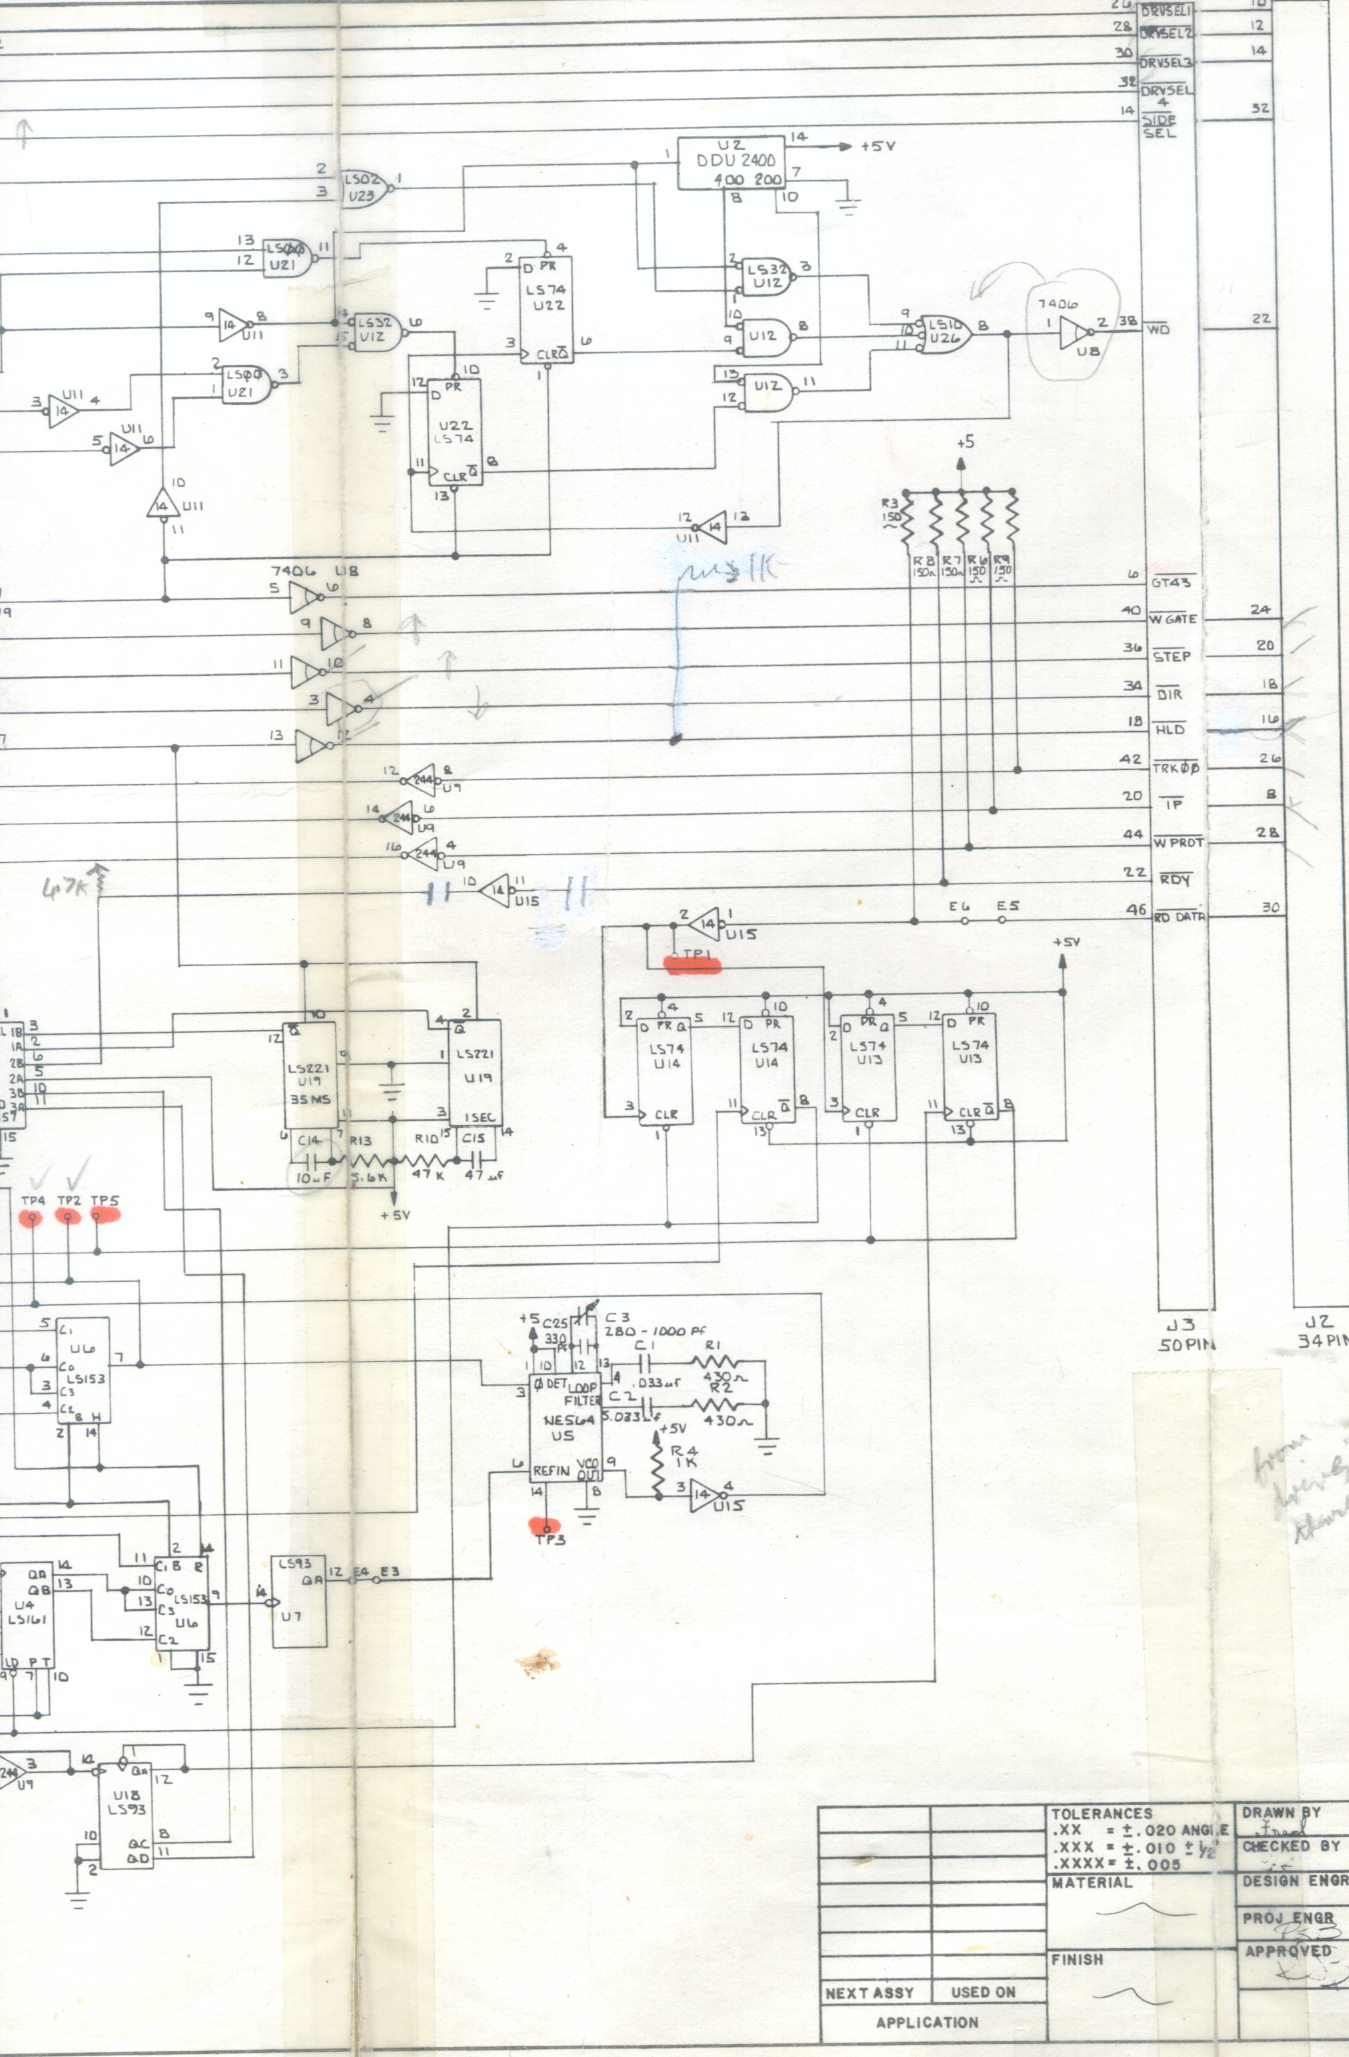 S100 Computers Wiring Diagram An Early Versafloppy Ii Schematic Can Be Seen Here And